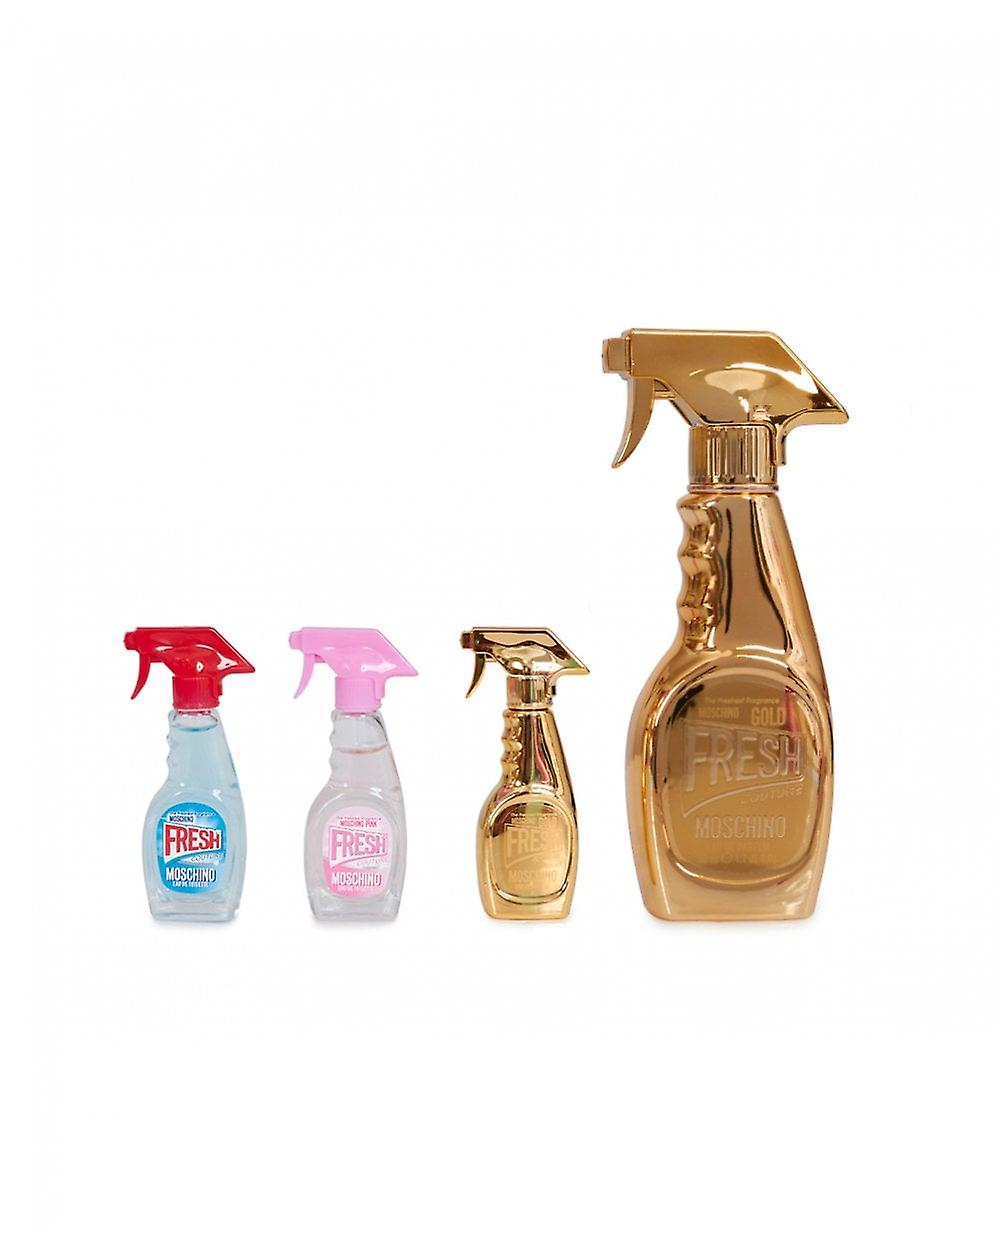 MOSCHINO GOLD FRESH COUTURE voor €34,99